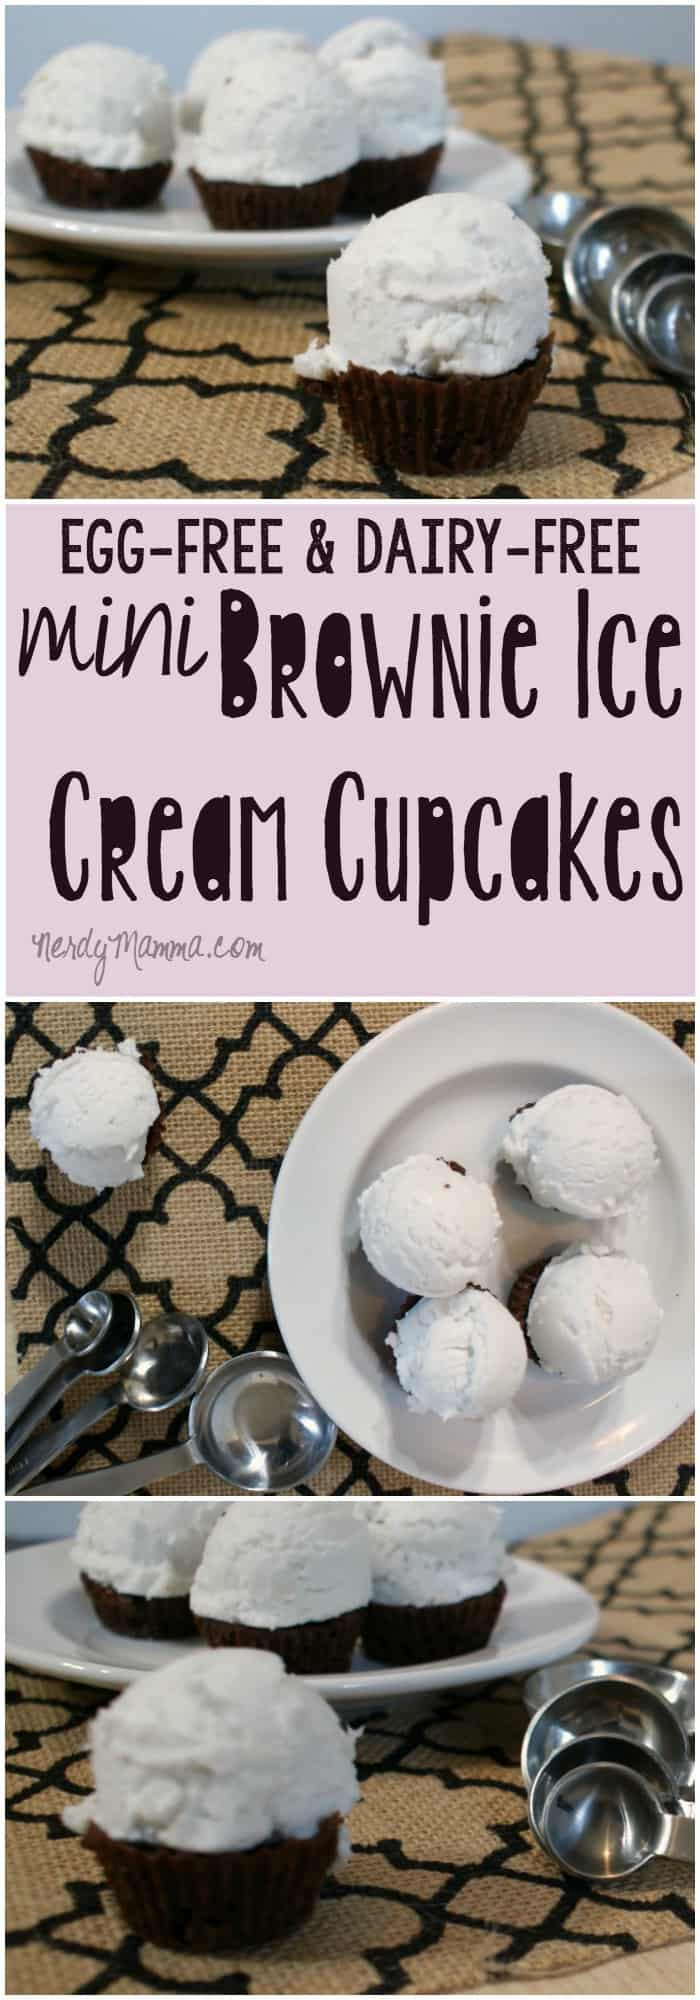 I loved these mini brownie ice cream cupcake bites so much that I had to make a second batch for the kids. I just couldn't help myself--I at them all. Oops.